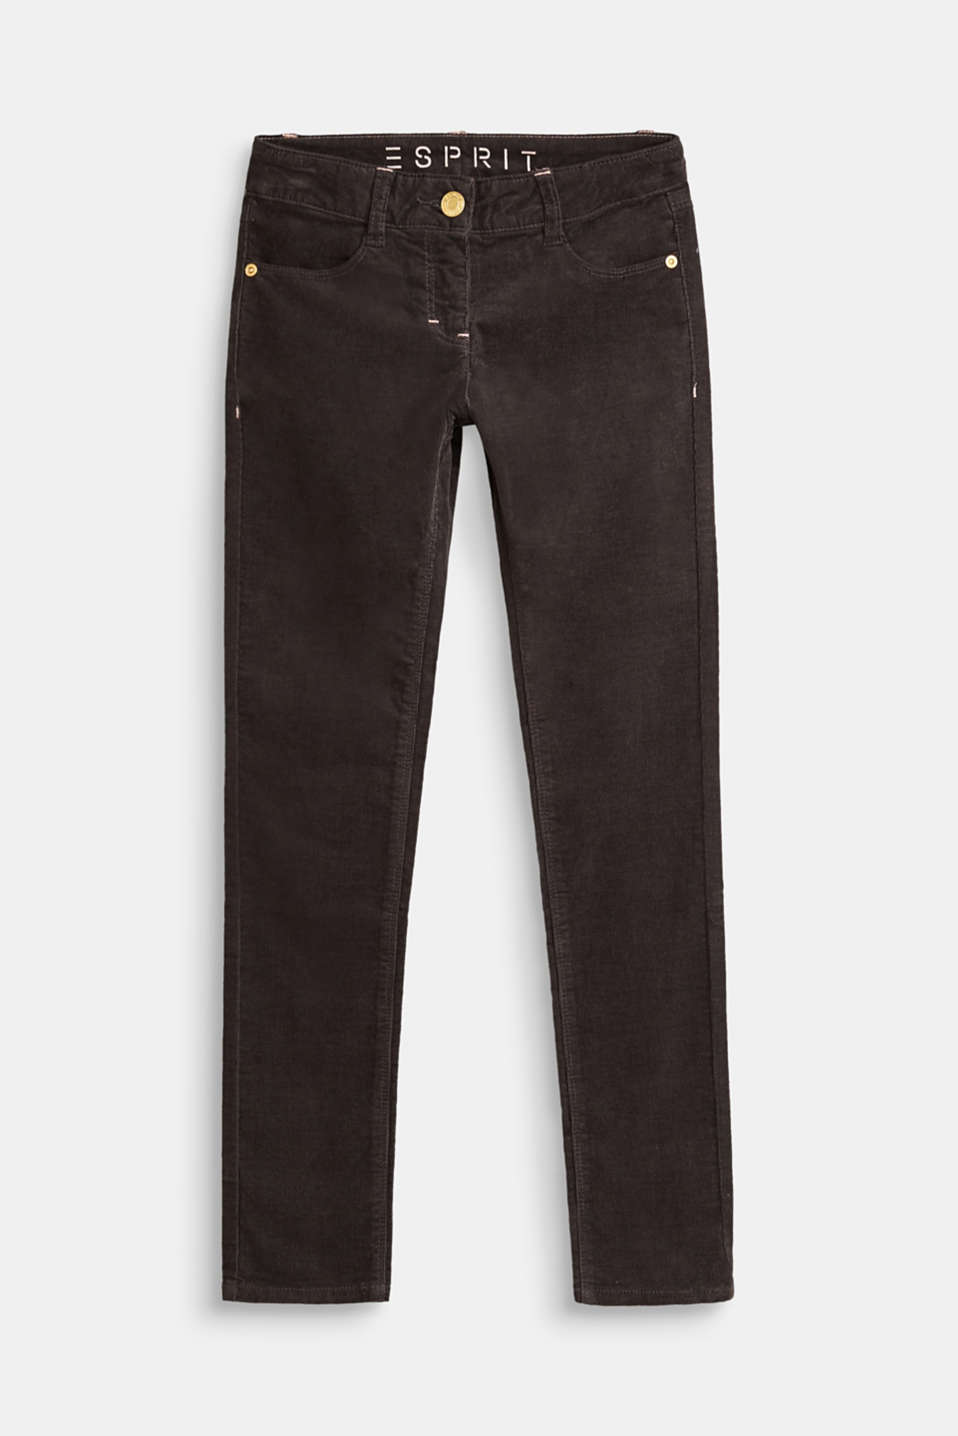 Esprit - Needlecord trousers in stretch cotton